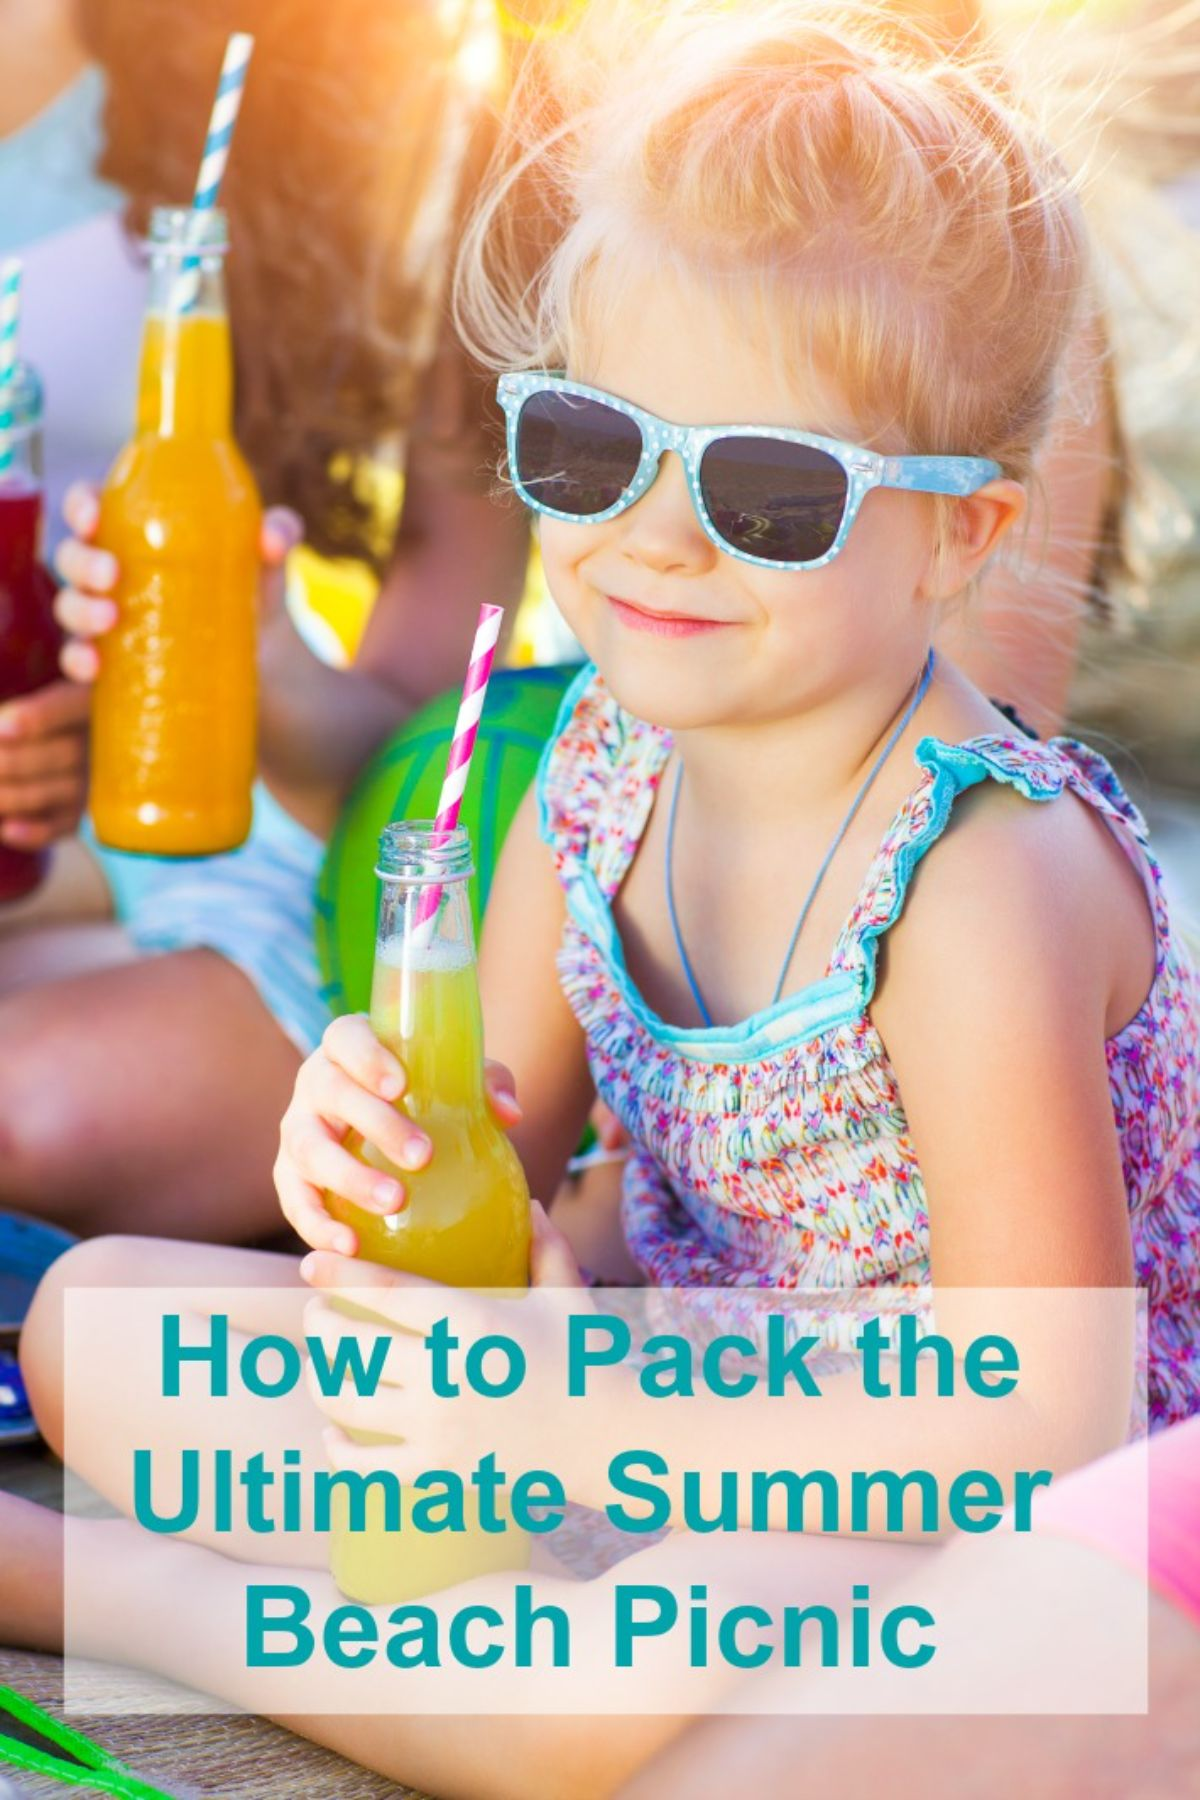 """the text reads """"How to pack the ultimate summer beach picnic"""" the image is of a blonde girl with blue sunglasses and a summer dress holding a glass bottle full of orange liquid. A stripy straw pokes out"""